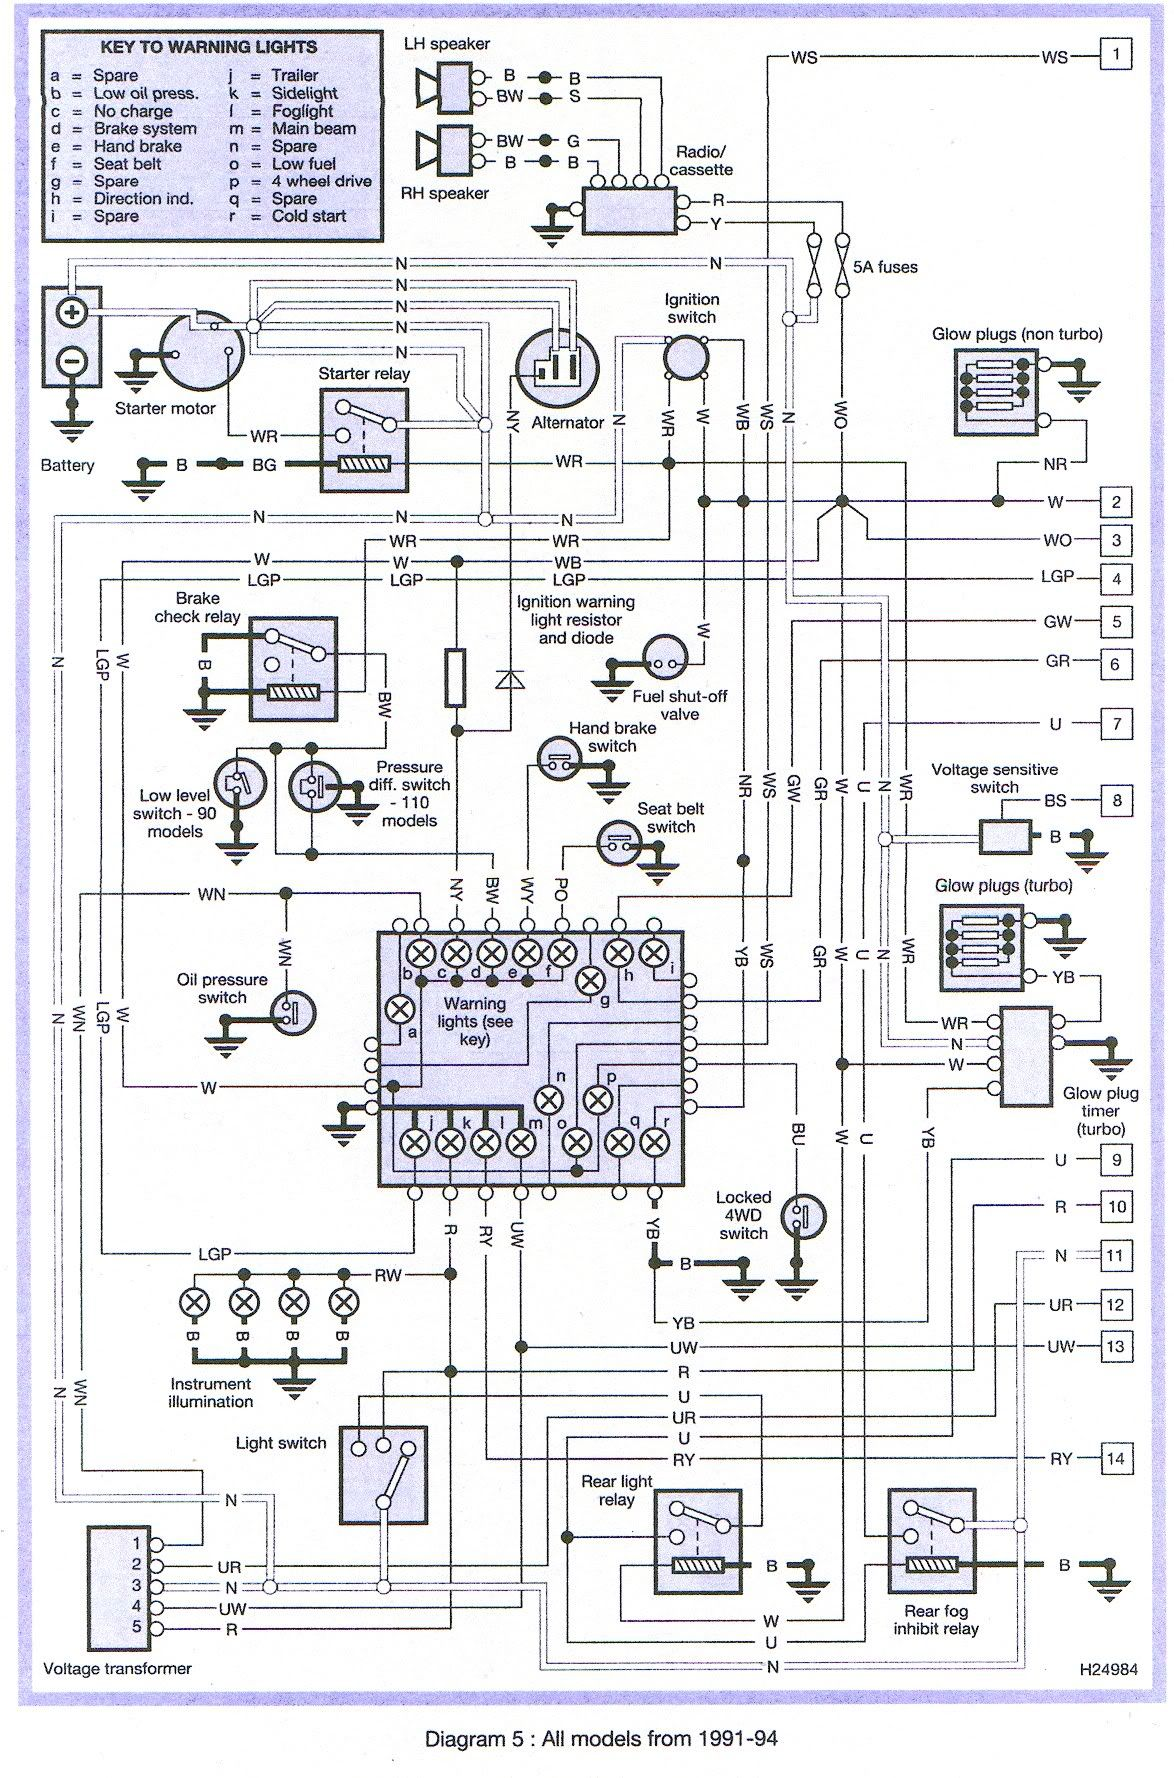 07629544bfff38ad2881b2c21312c6e6 land rover discovery wiring diagram manual repair with engine range rover sport fuse box diagram at gsmportal.co